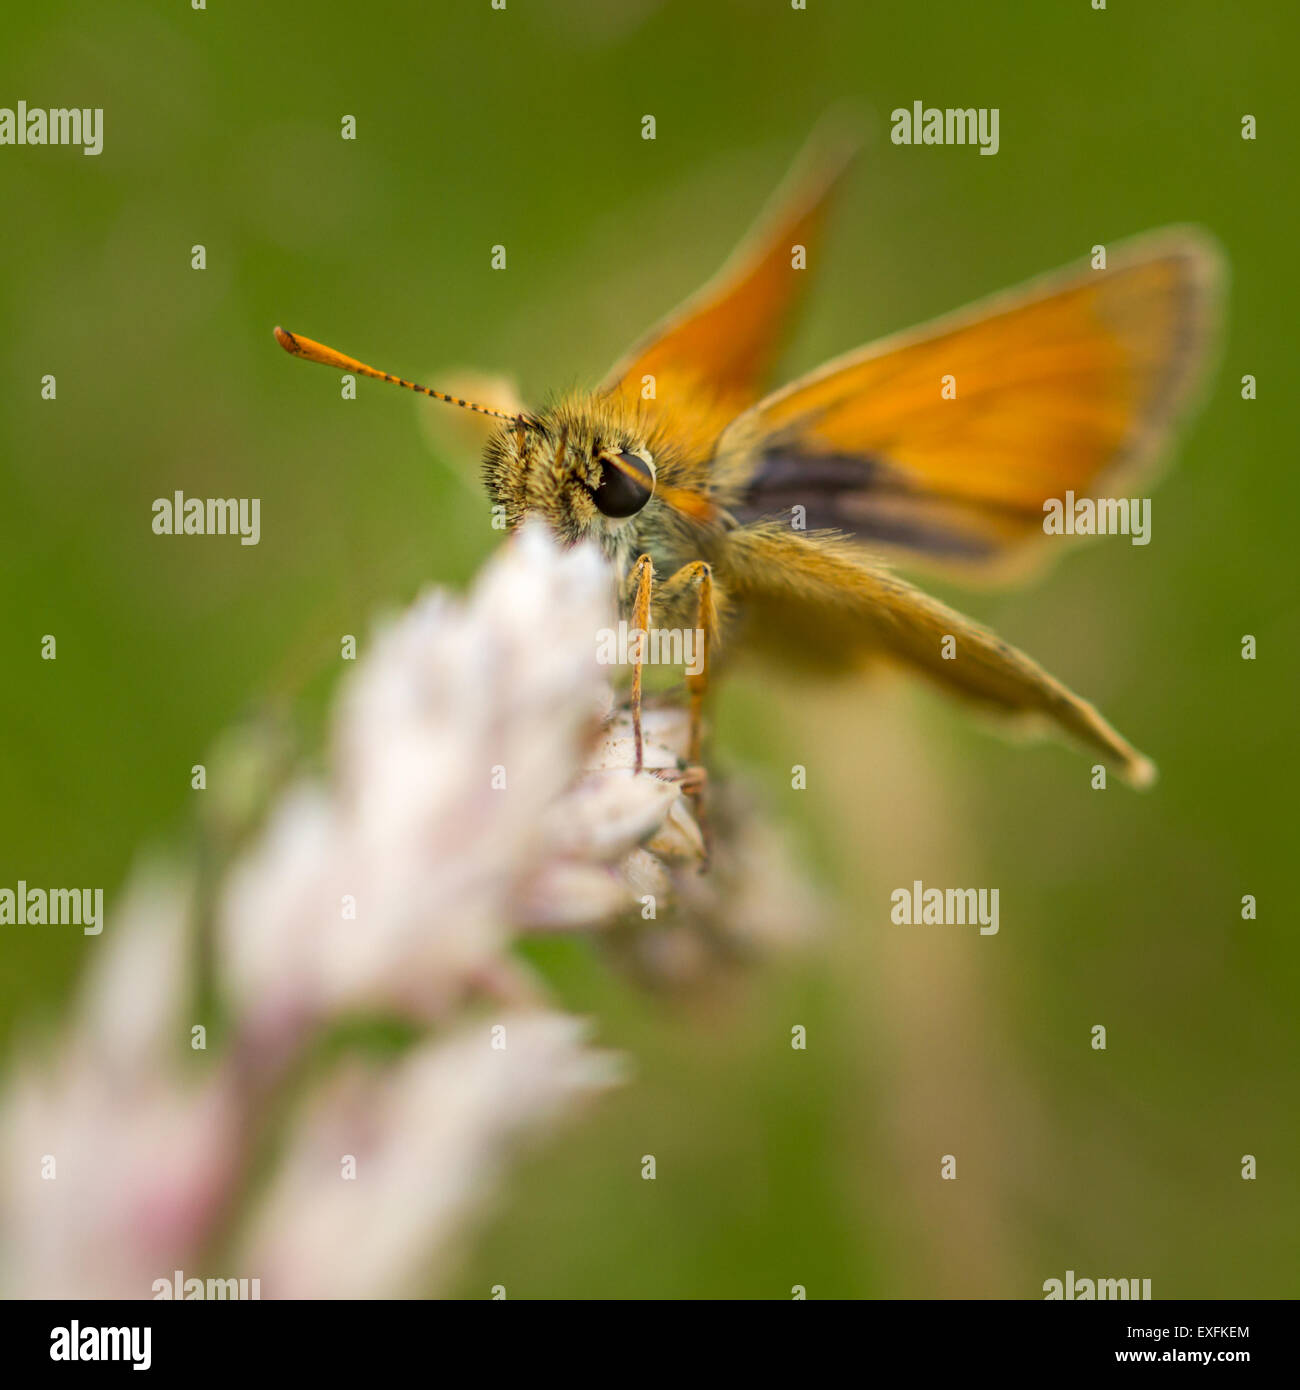 A small skipper butterfly on a grass seed head, Yorkshire, UK - Stock Image